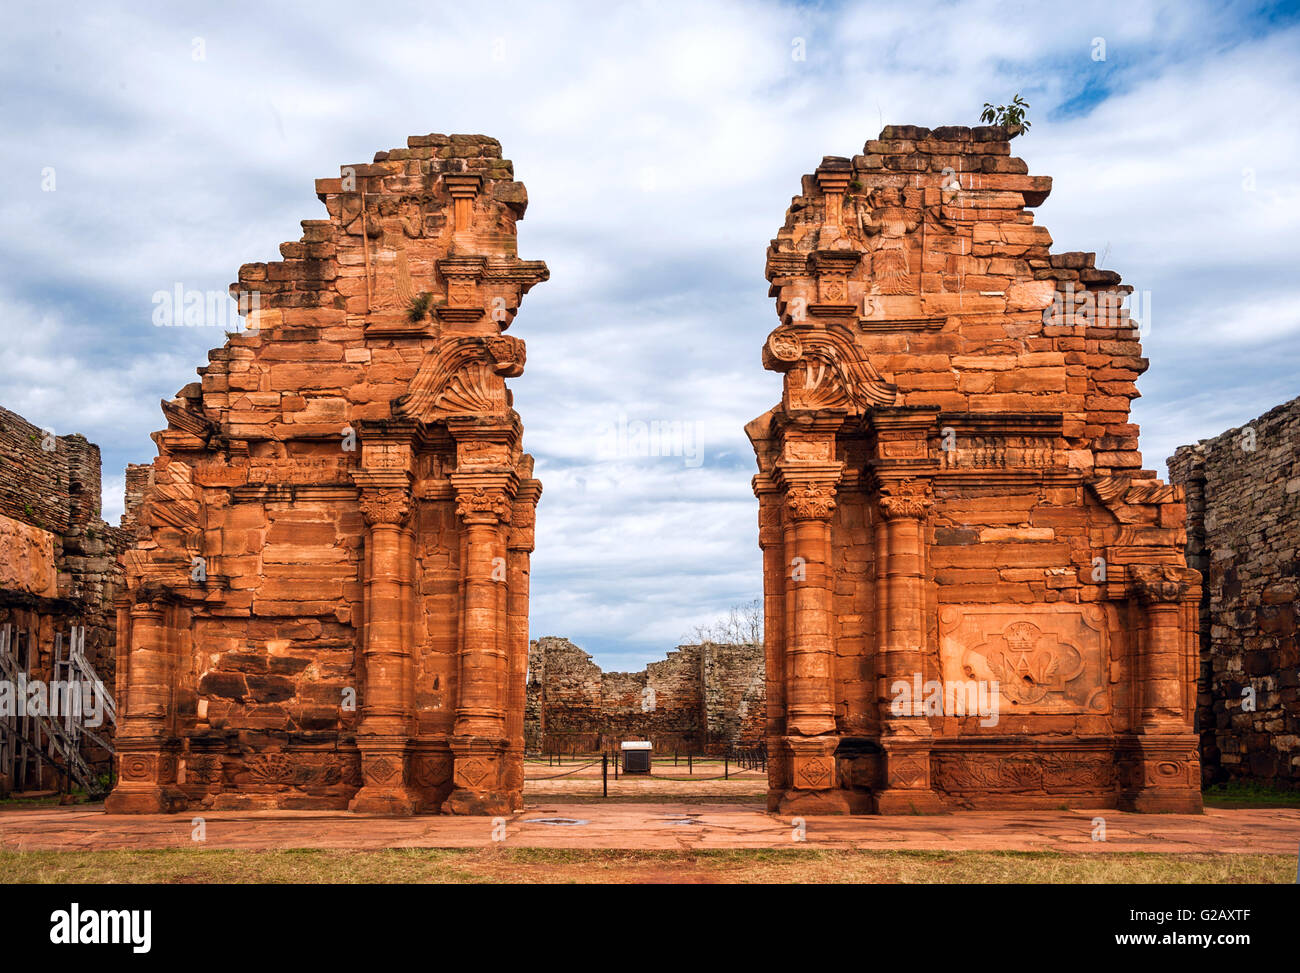 San Ignacio-Mini mission founded in 1632 by the Jesuits, Misiones Province, Argentina - Stock Image